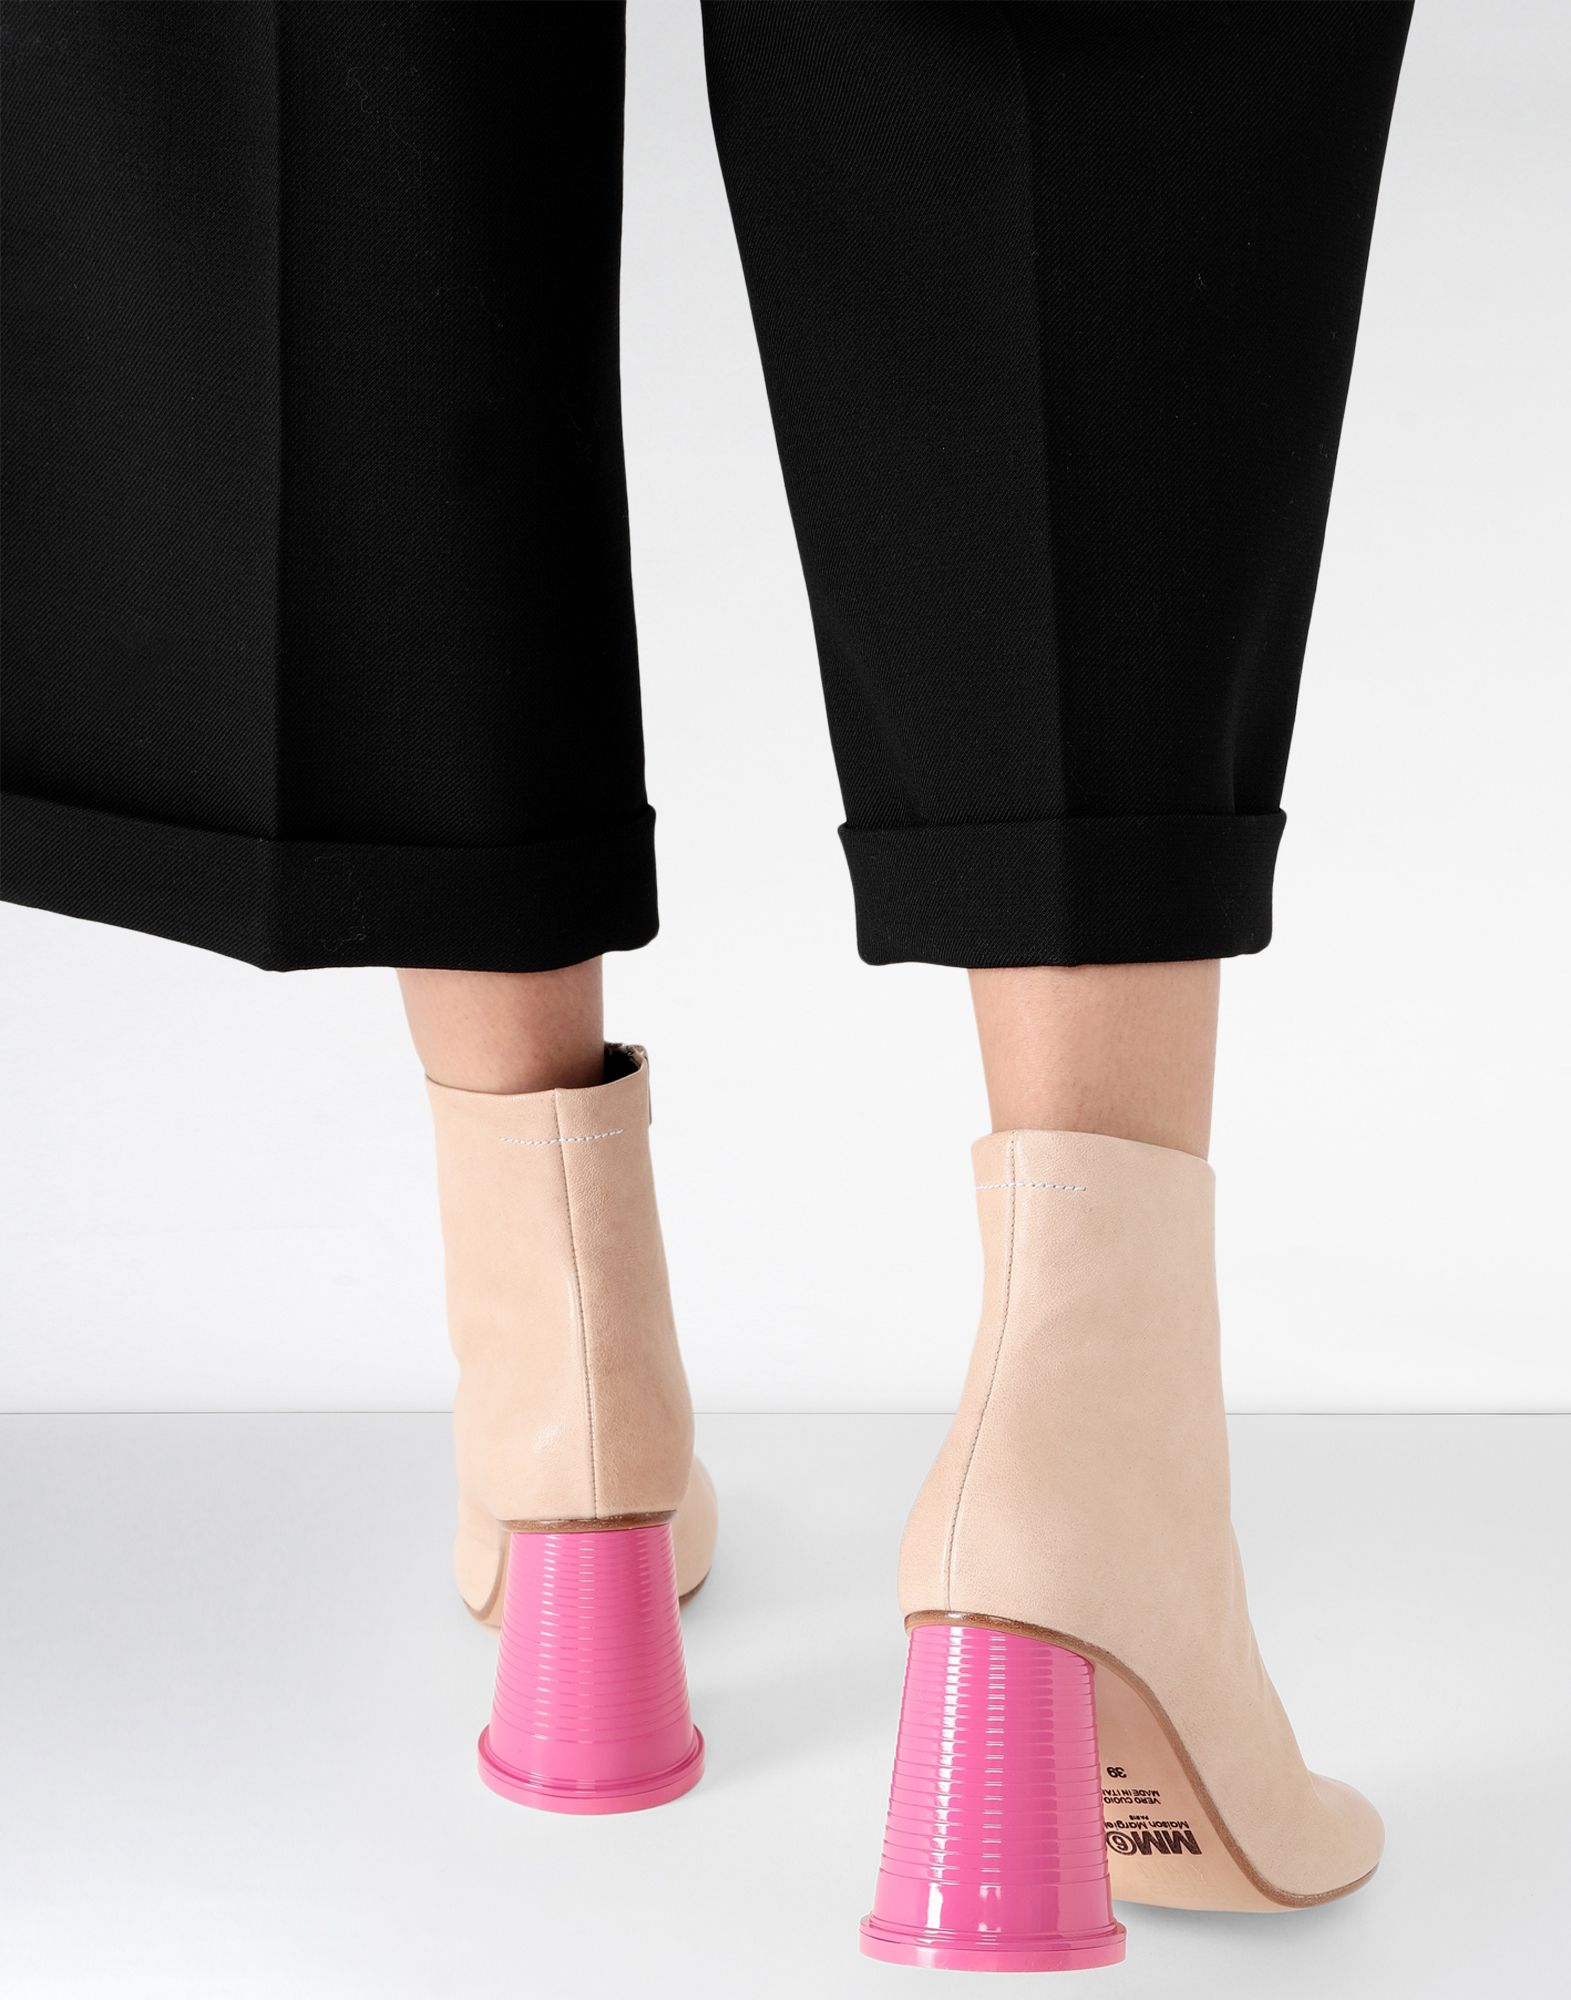 MM6 MAISON MARGIELA Ankle boots with cup heels Ankle boots Woman b